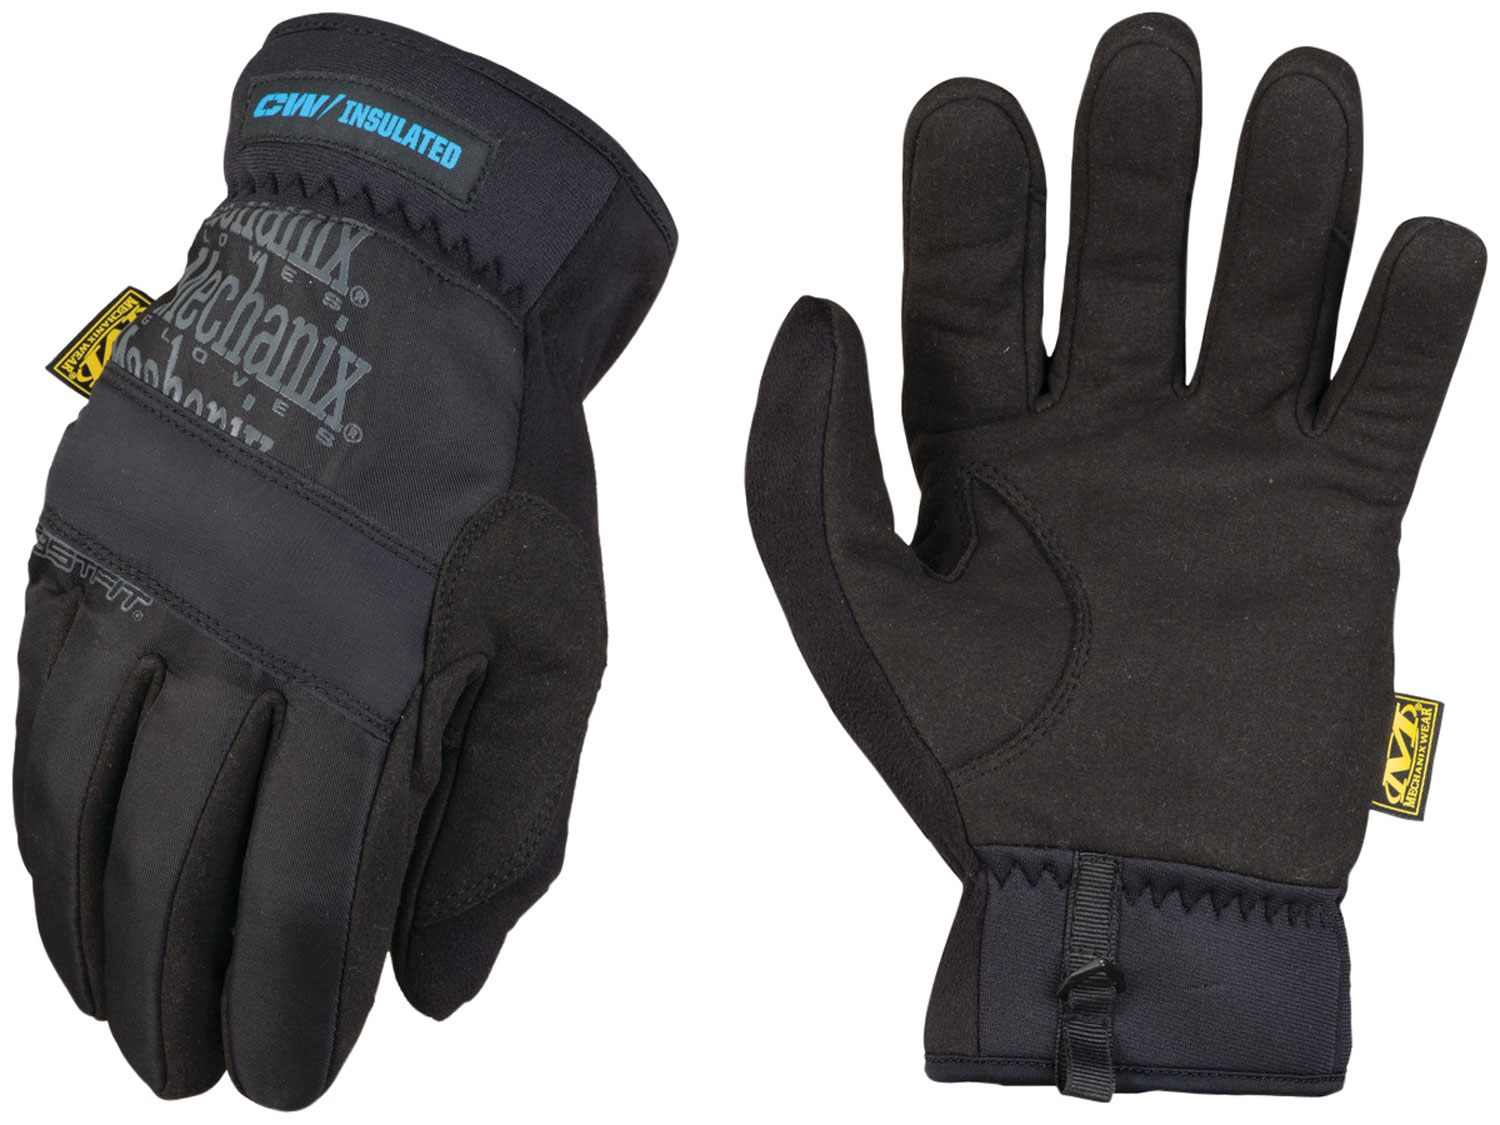 MECHANIX WEAR MFF-95-008 FastFit Insulated Small Black Synthetic Leather Touchscreen